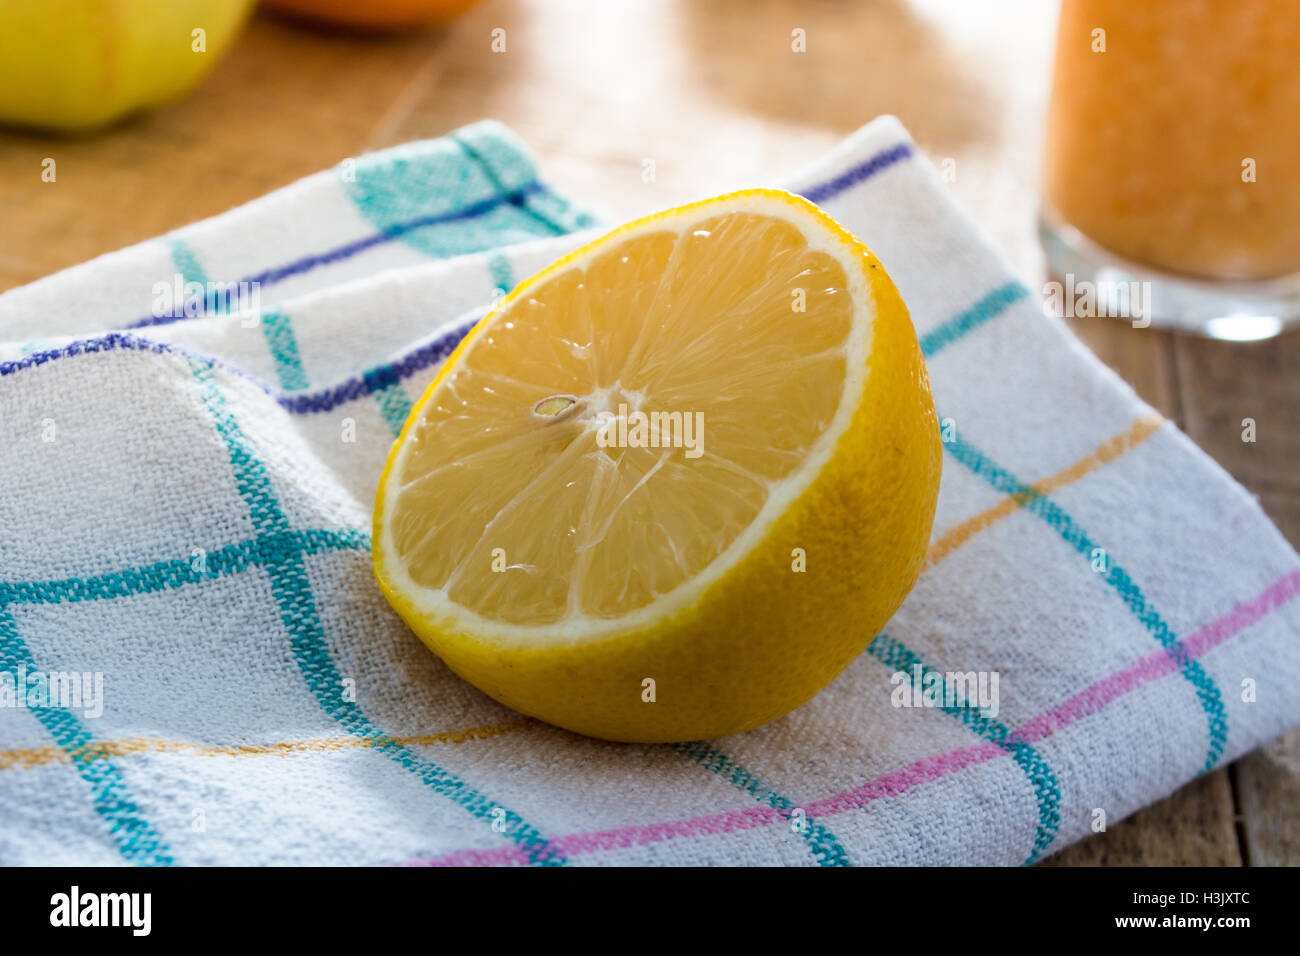 Lonely lemon on a kitchen cloth surrounded with other kitchen things - Stock Image